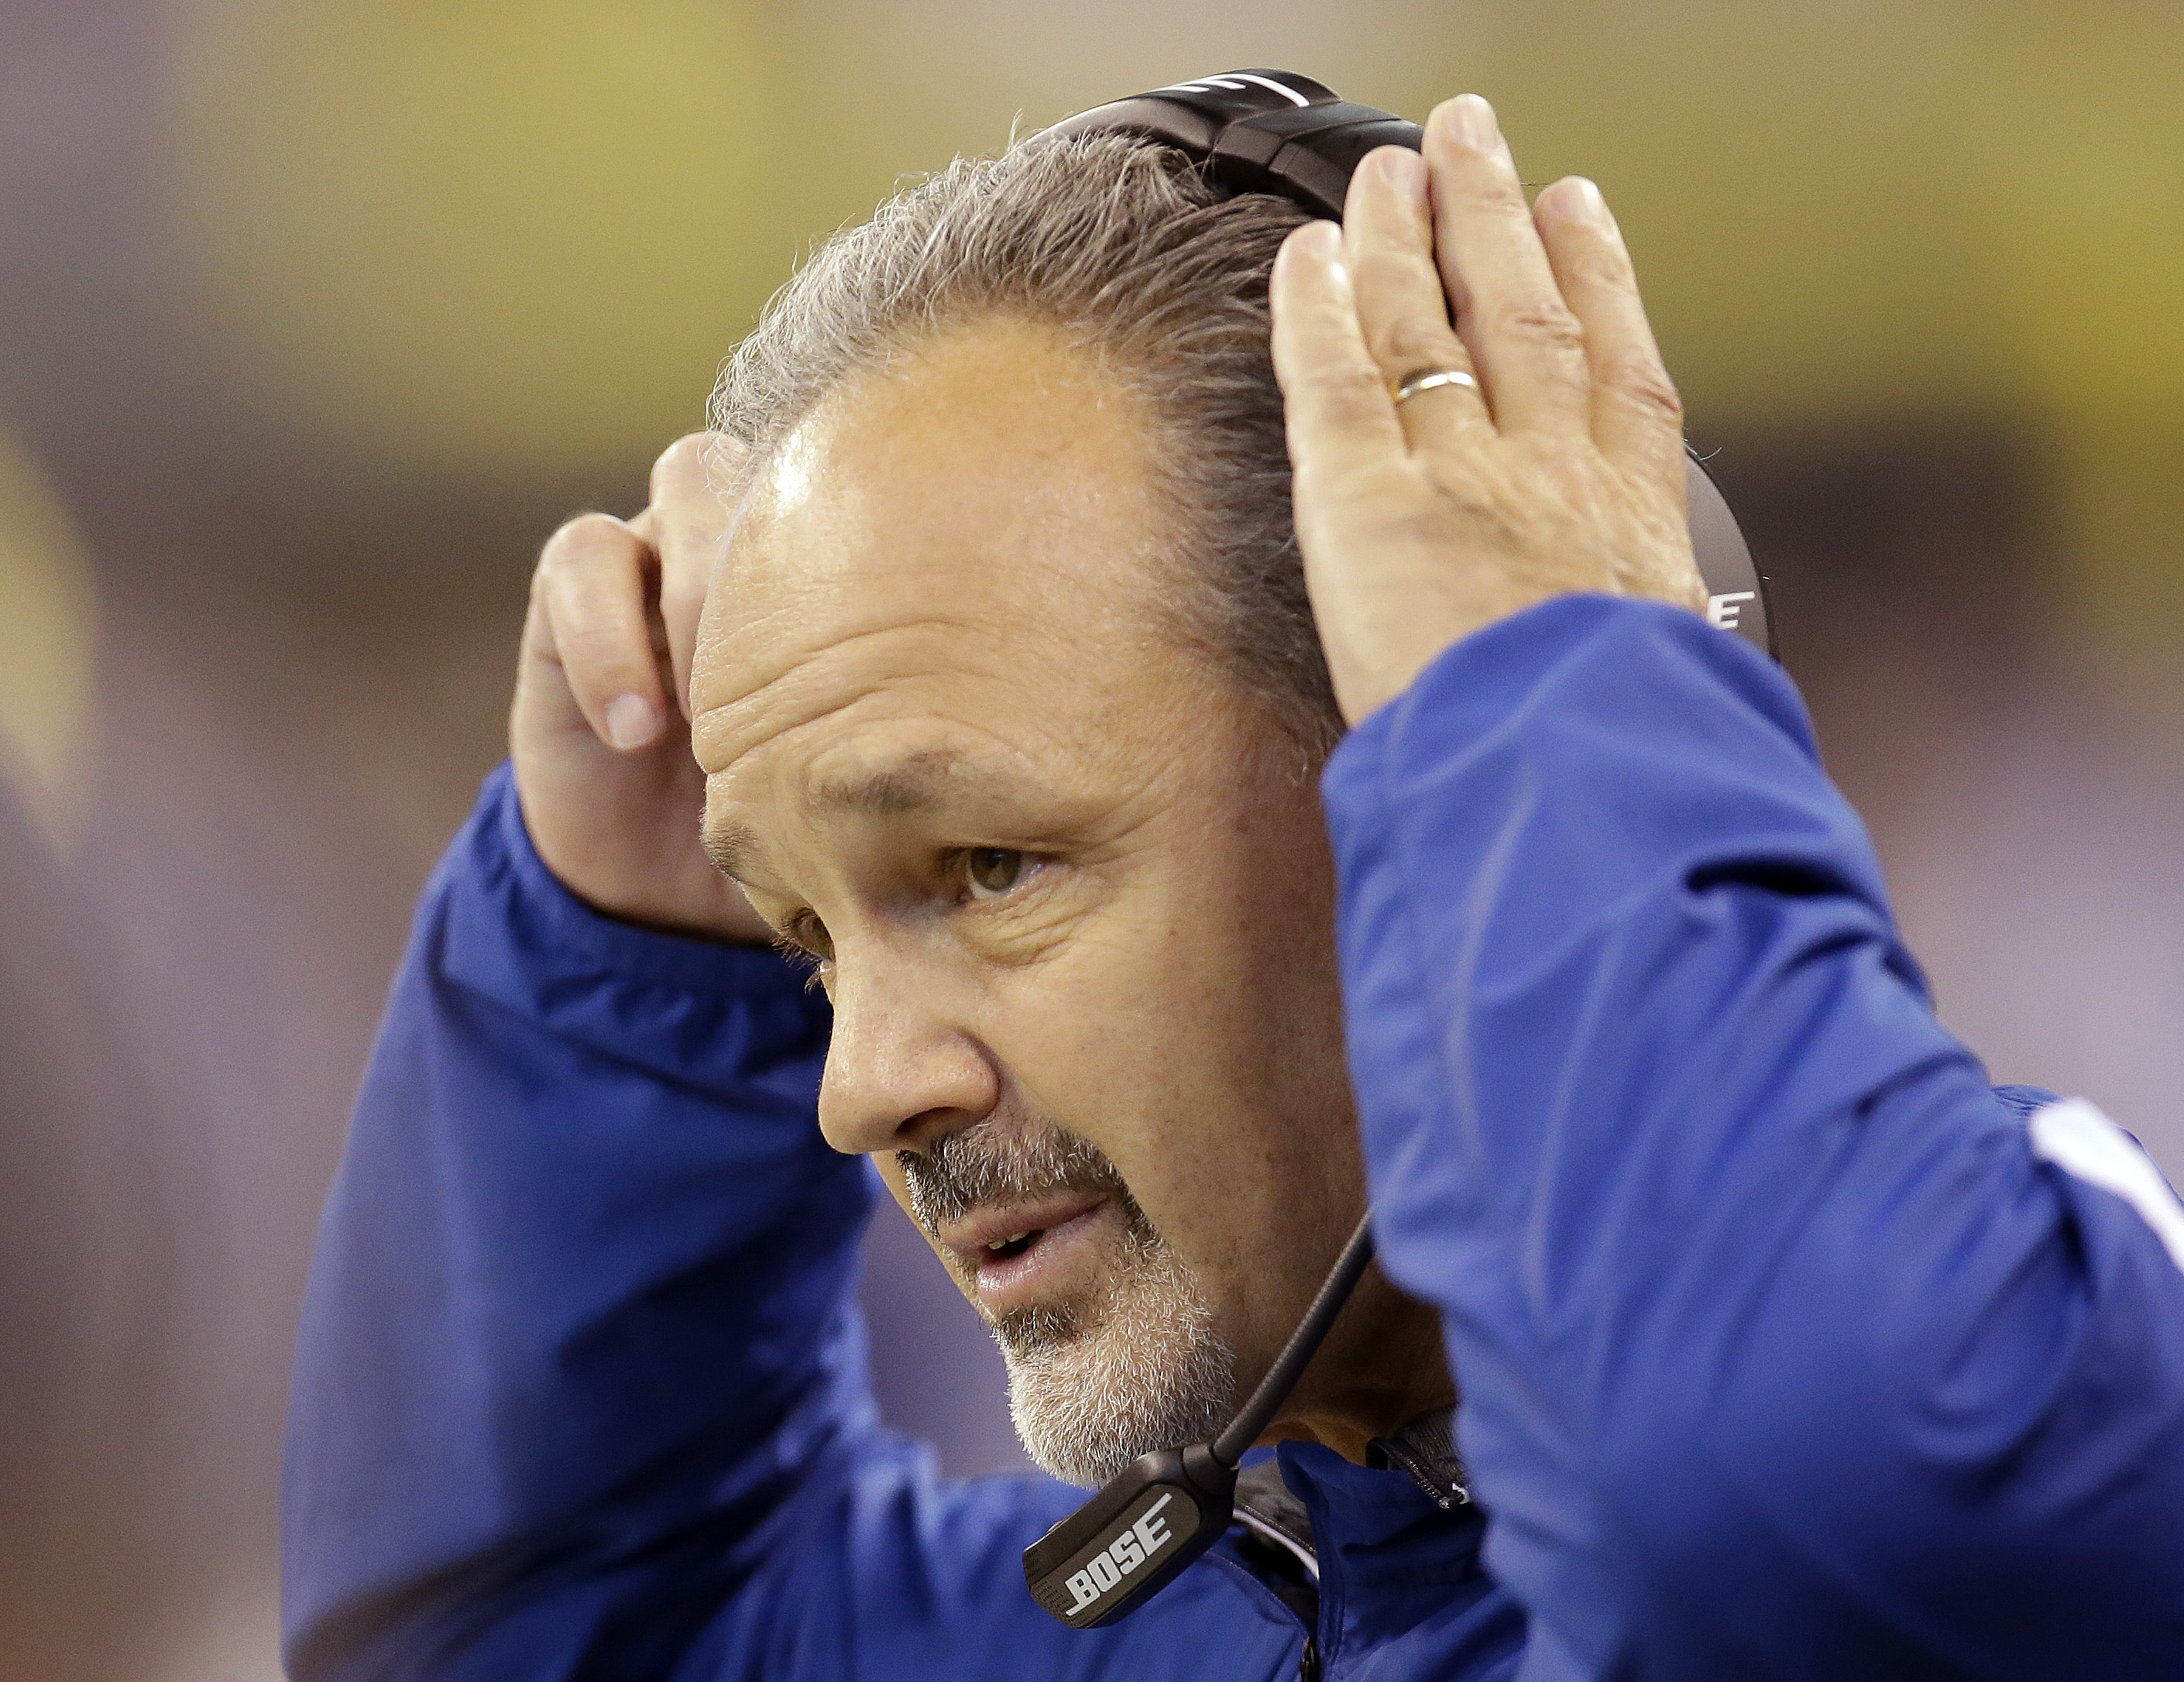 FILE -  This Dec. 20, 2015 file photo shows Indianapolis Colts head coach Chuck Pagano watching during the first half of an NFL football game against the Houston Texans in Indianapolis. The Colts will face the Miami Dolphins on Sunday, Dec. 27, 2015. (AP